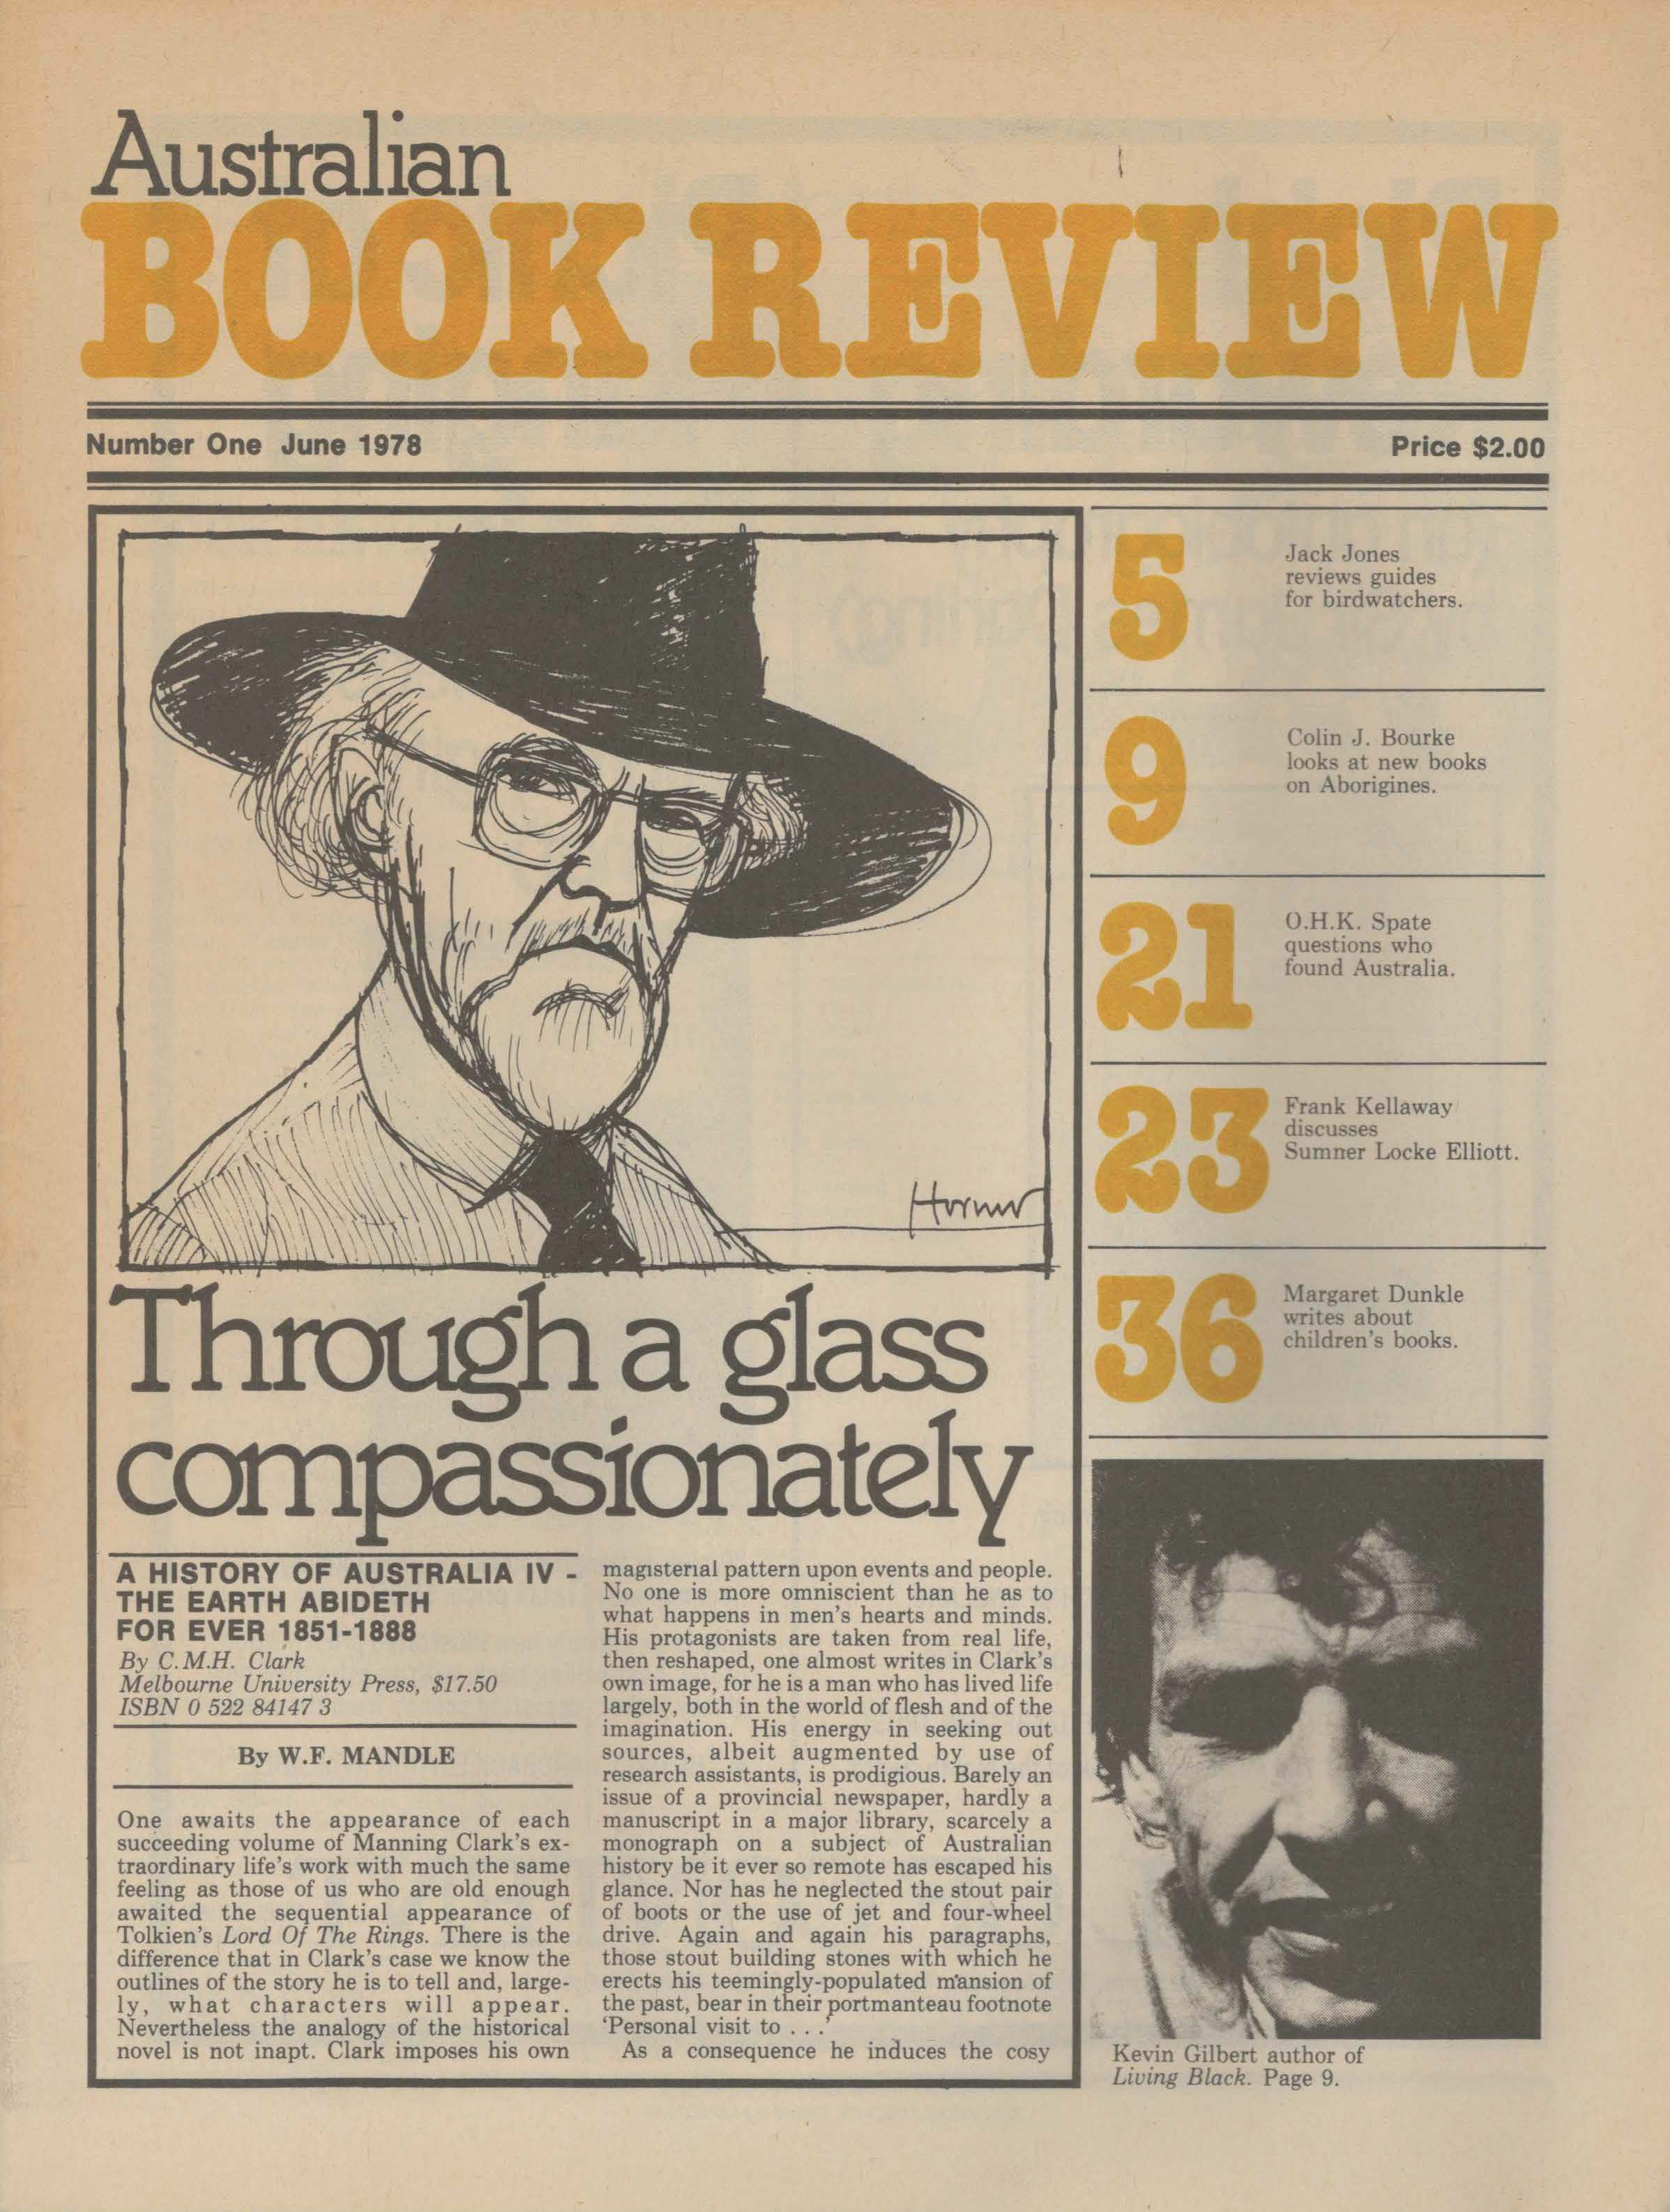 Issue #1, June 1978